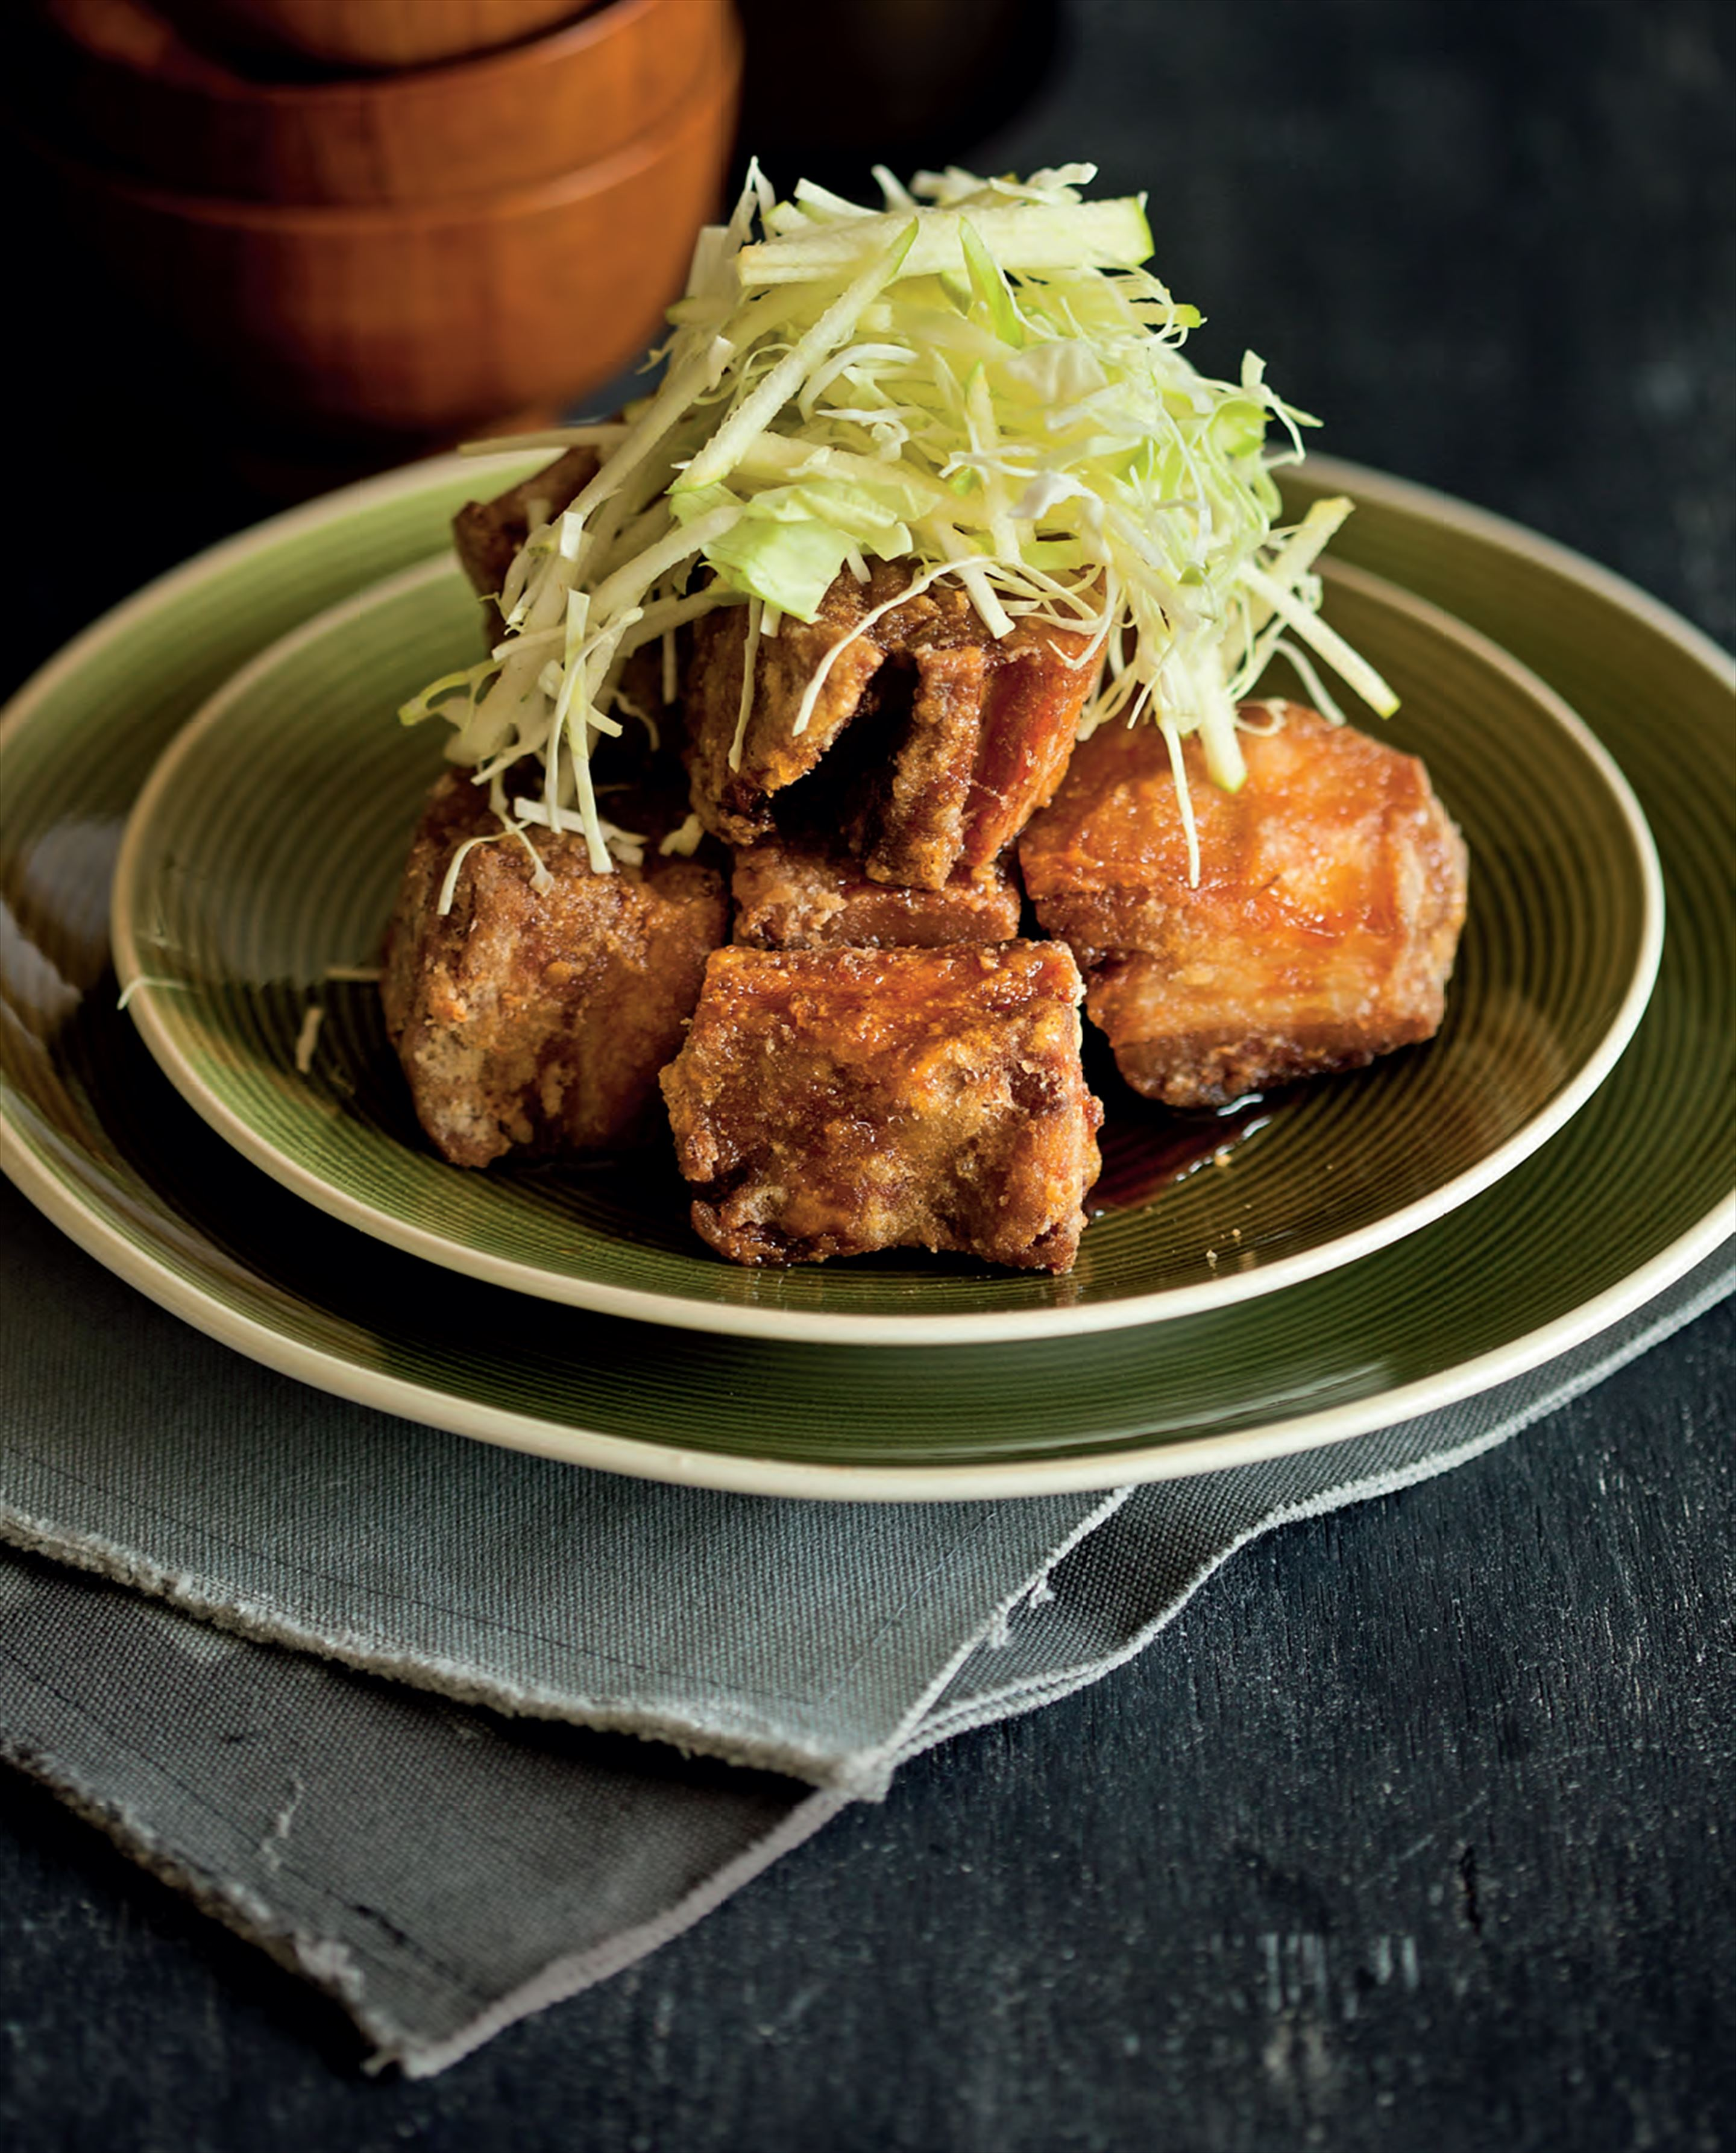 Twice-cooked pork belly with apple and cabbage slaw